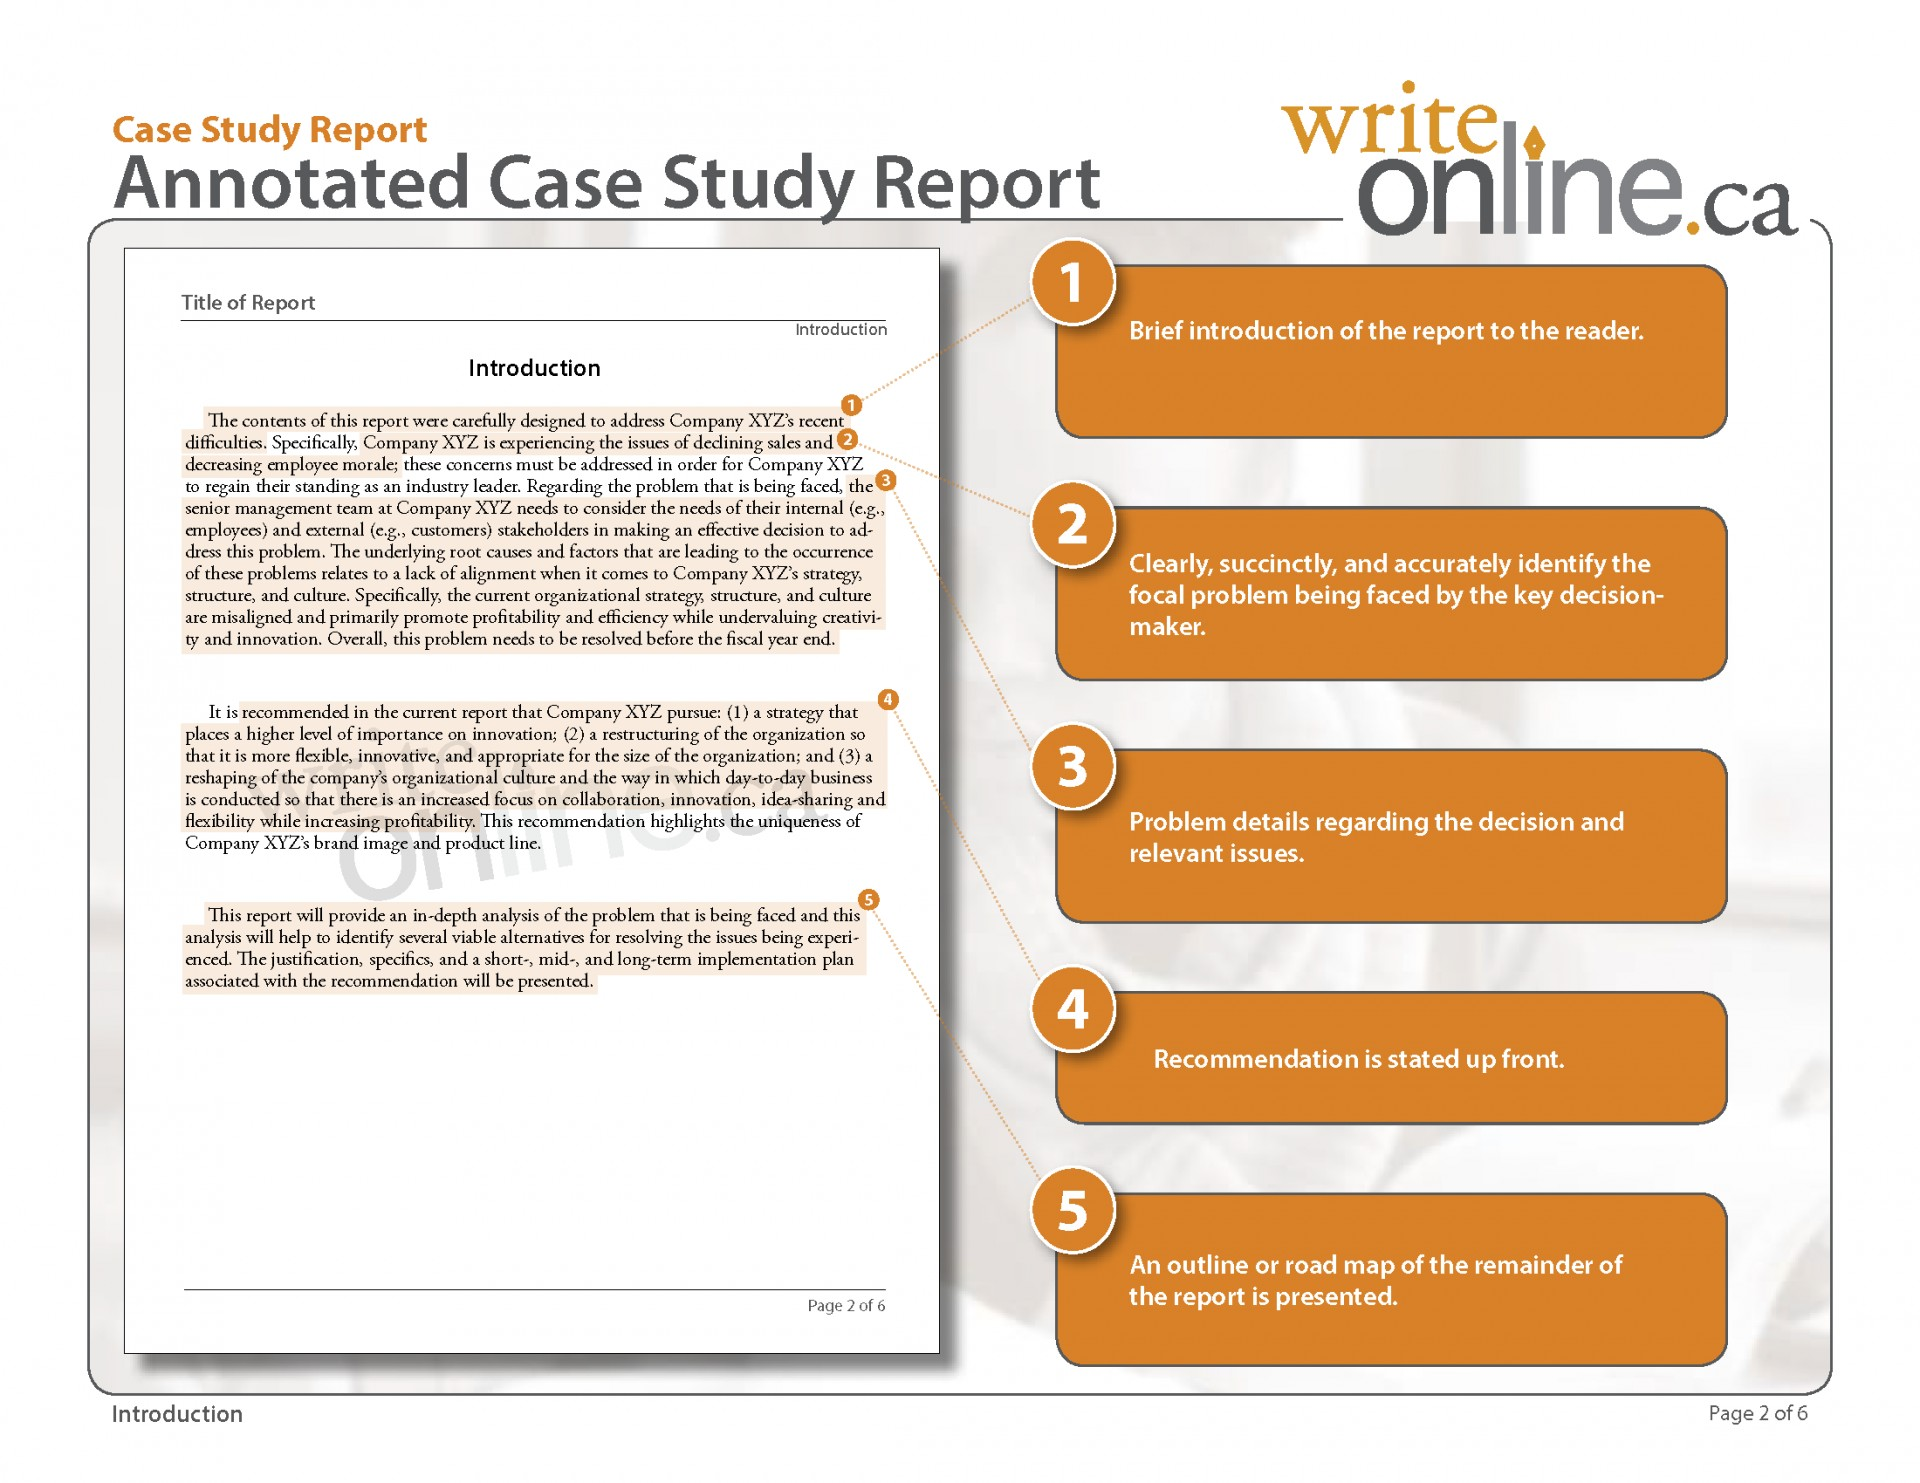 025 Research Paper Casestudy Annotatedfull Page 2 Making Breathtaking A Introduction 1920